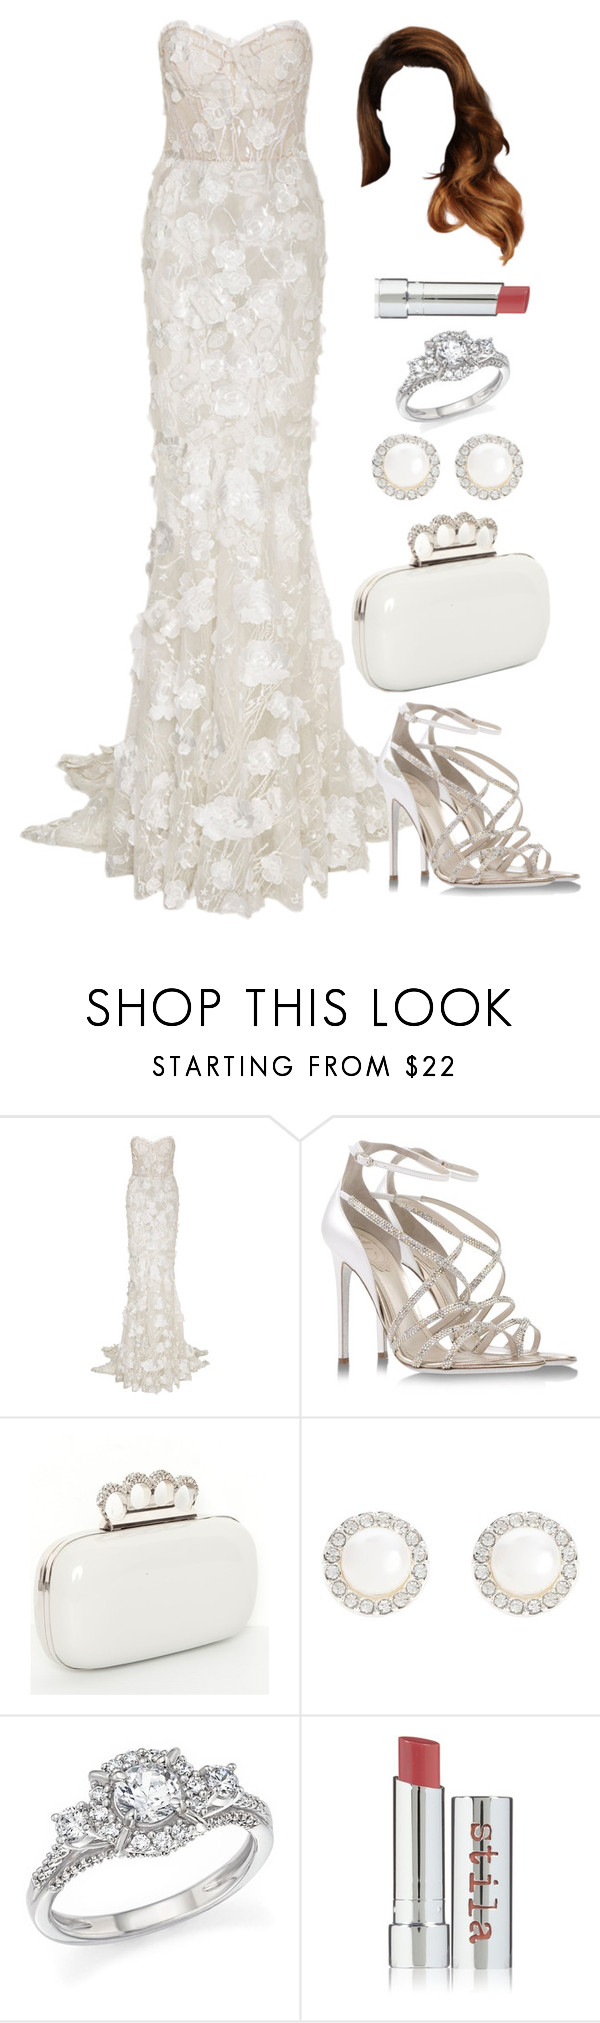 """""""Untitled #4166"""" by natalyasidunova ❤ liked on Polyvore featuring René Caovilla, Snö Of Sweden, Bloomingdale's and Stila"""